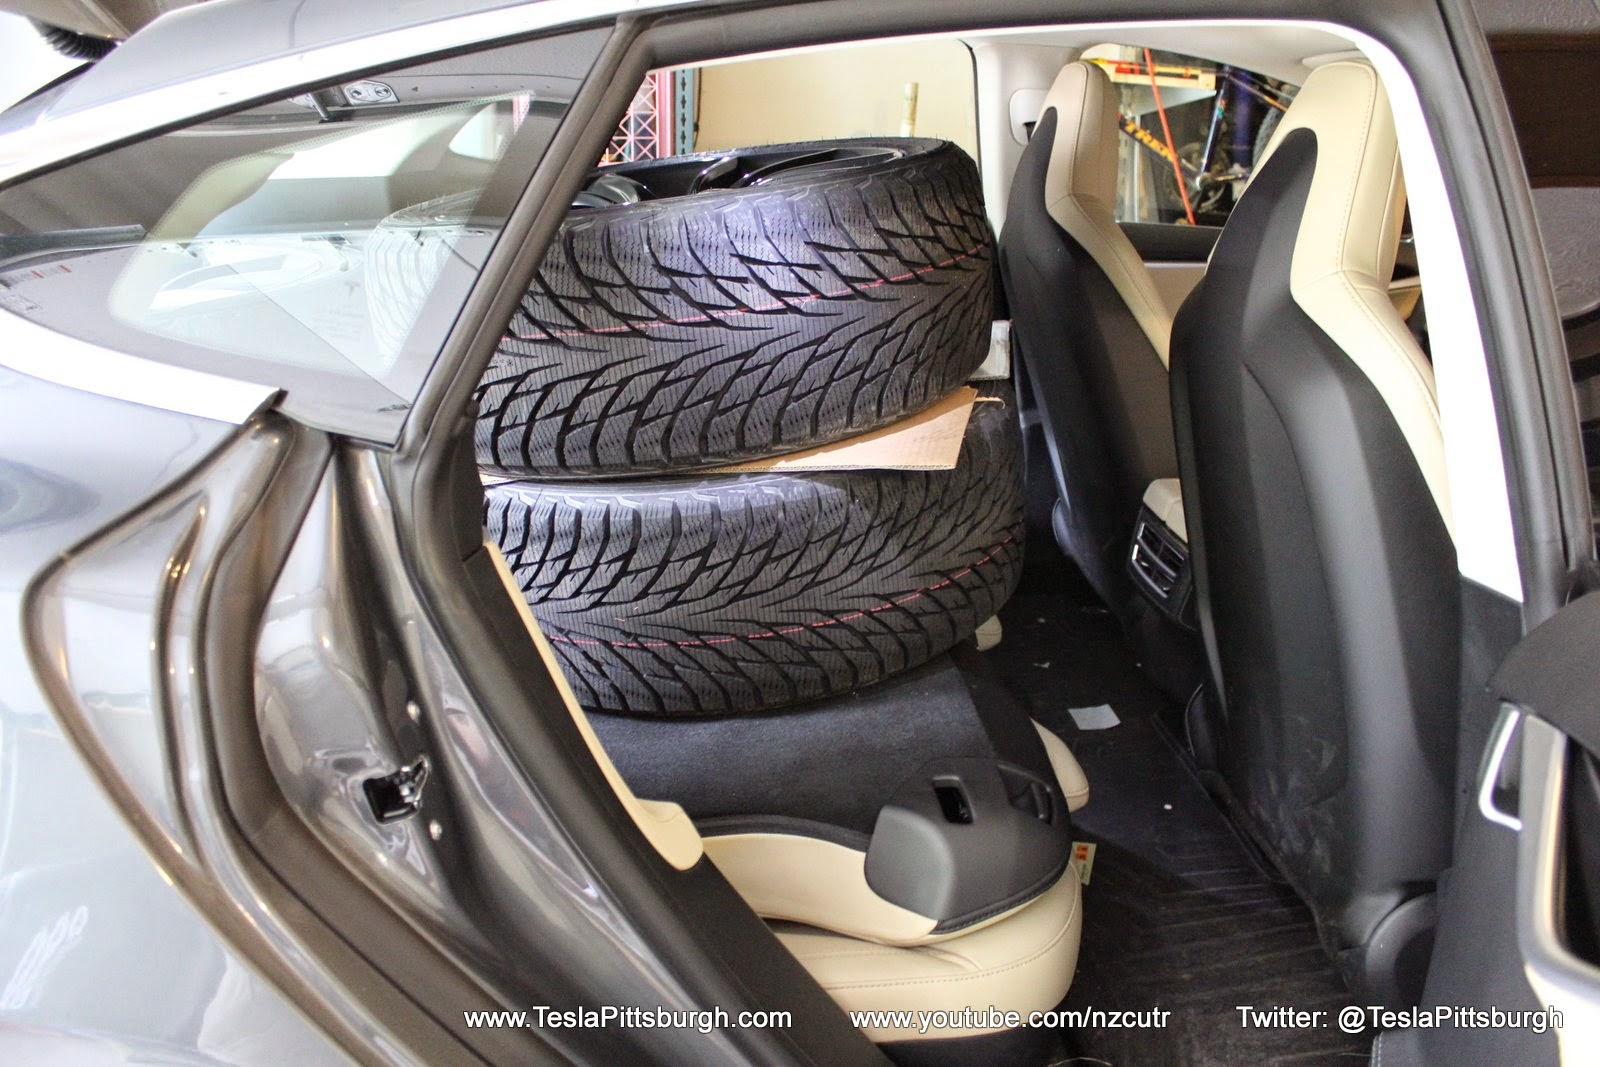 Model-S-Rear-Seat-Winter-Wheel-Tires